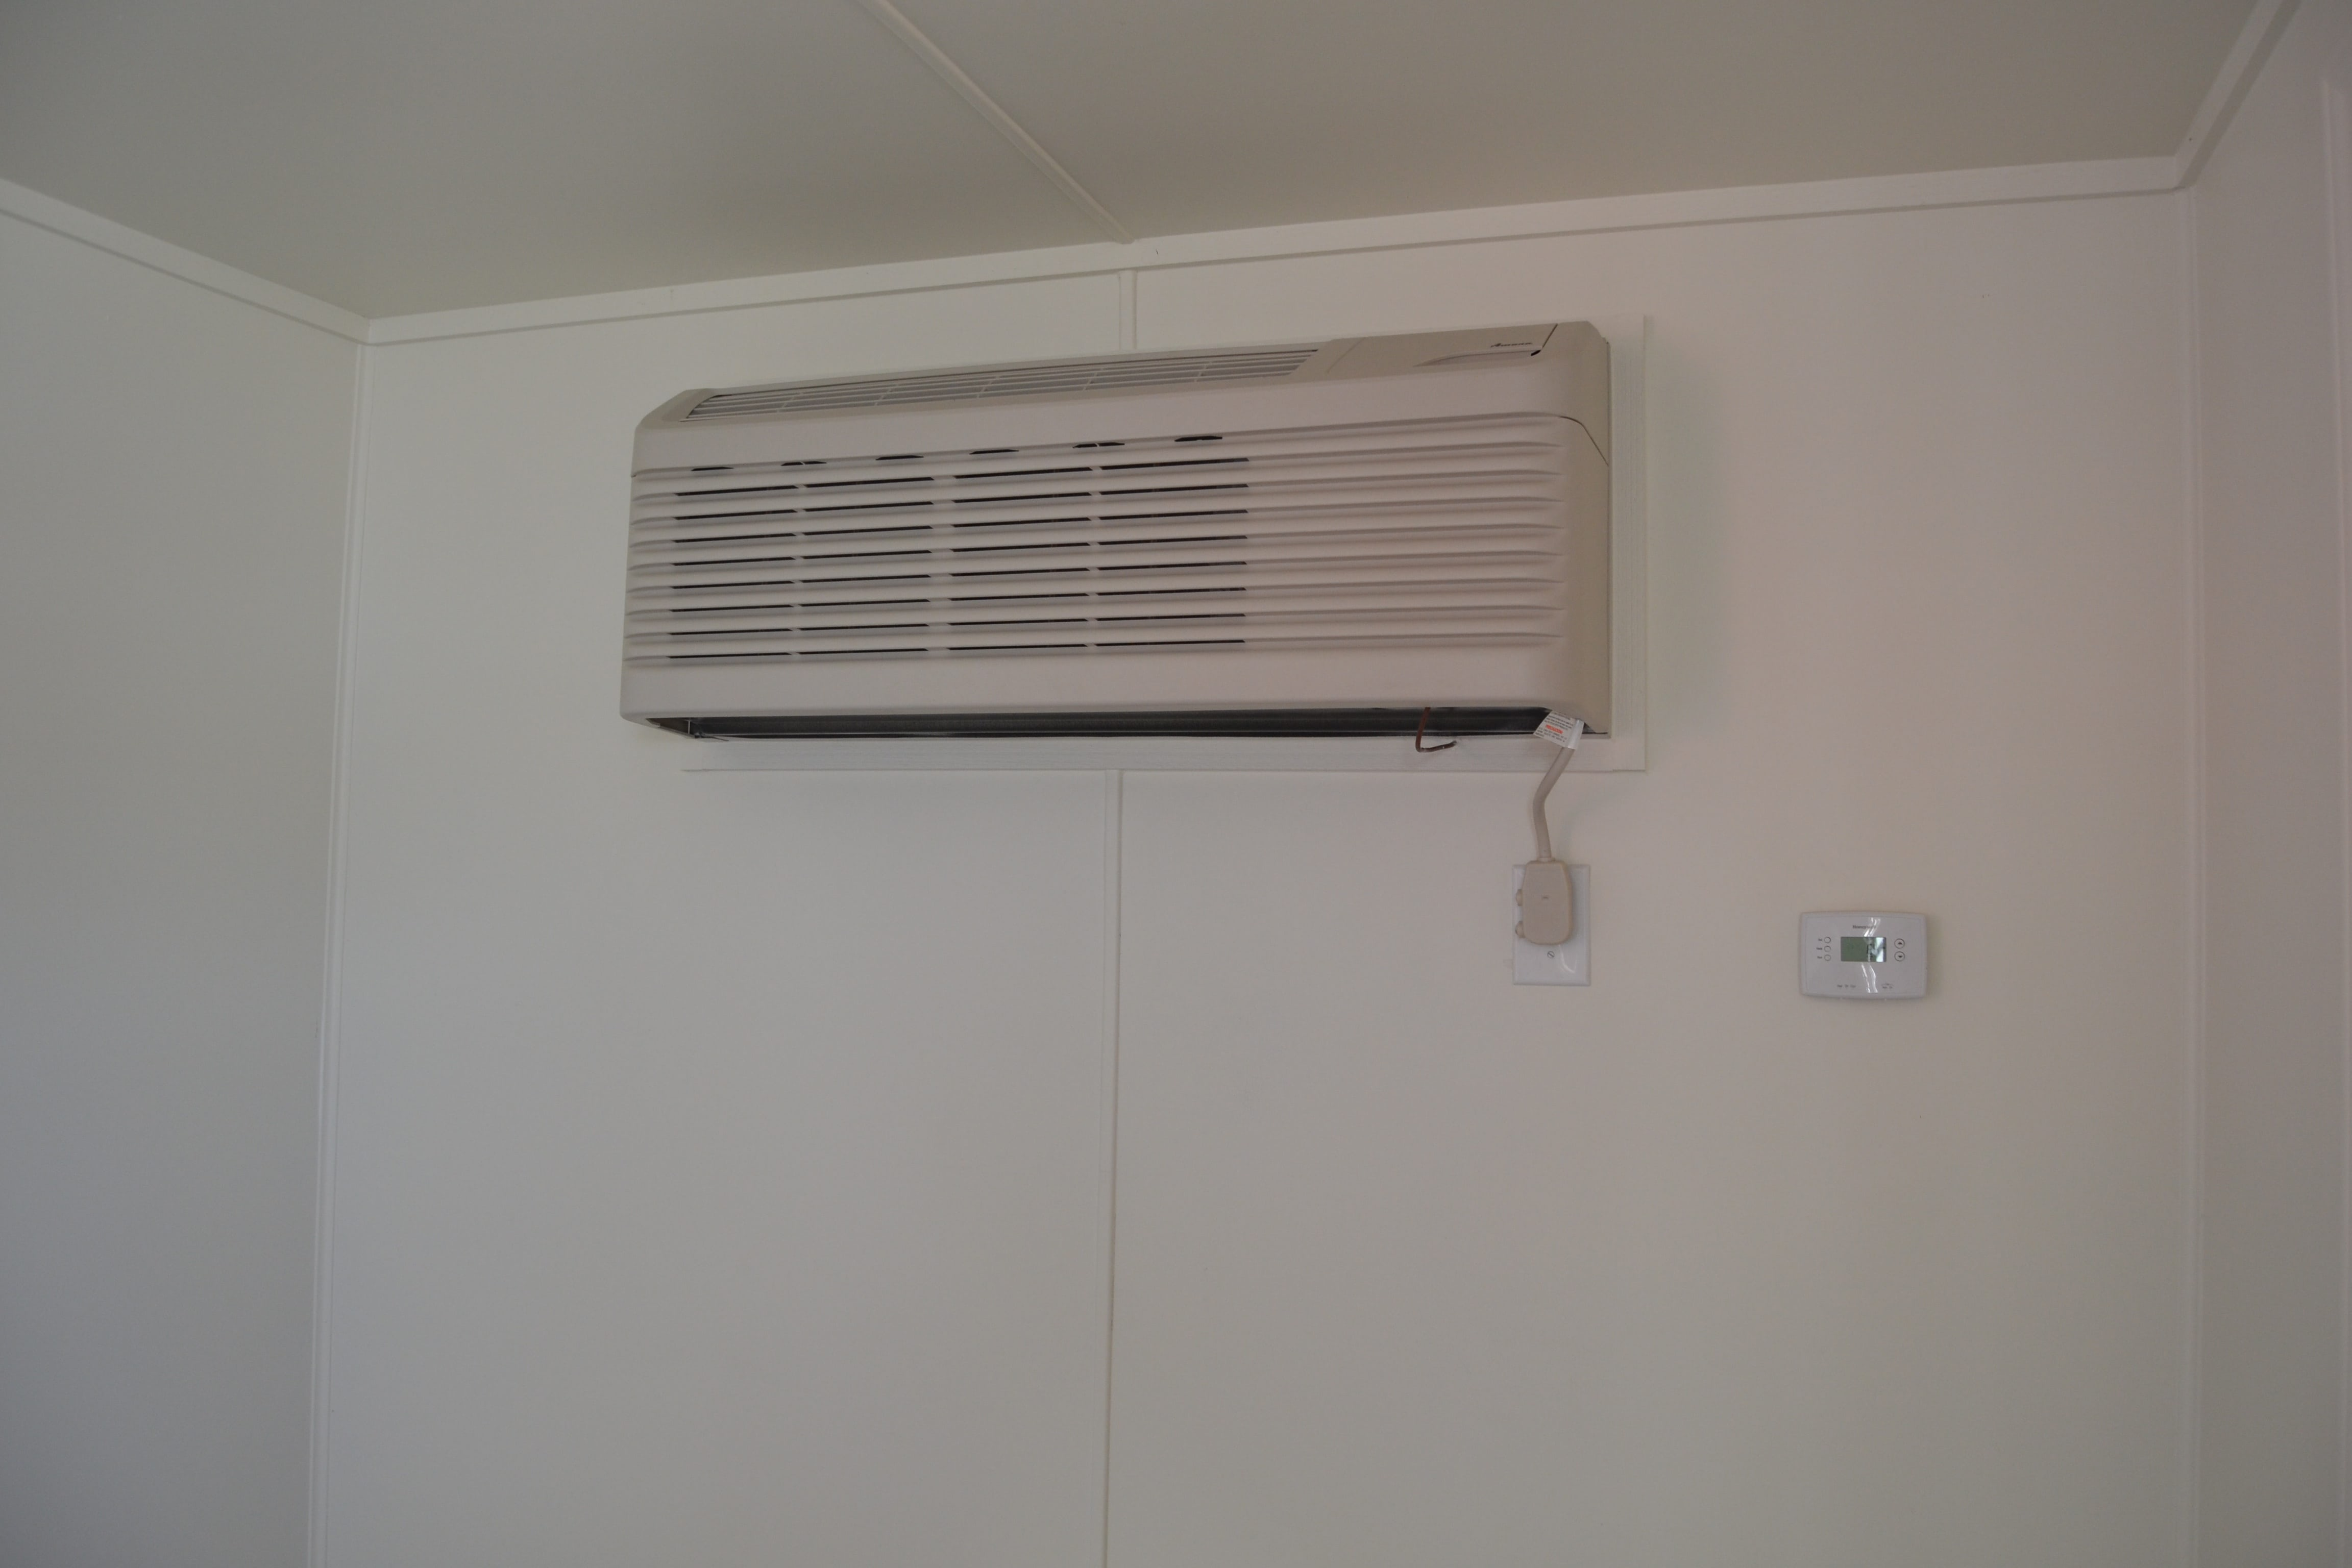 Air conditioning (HVAC) unit installed in wall of mobile container office.